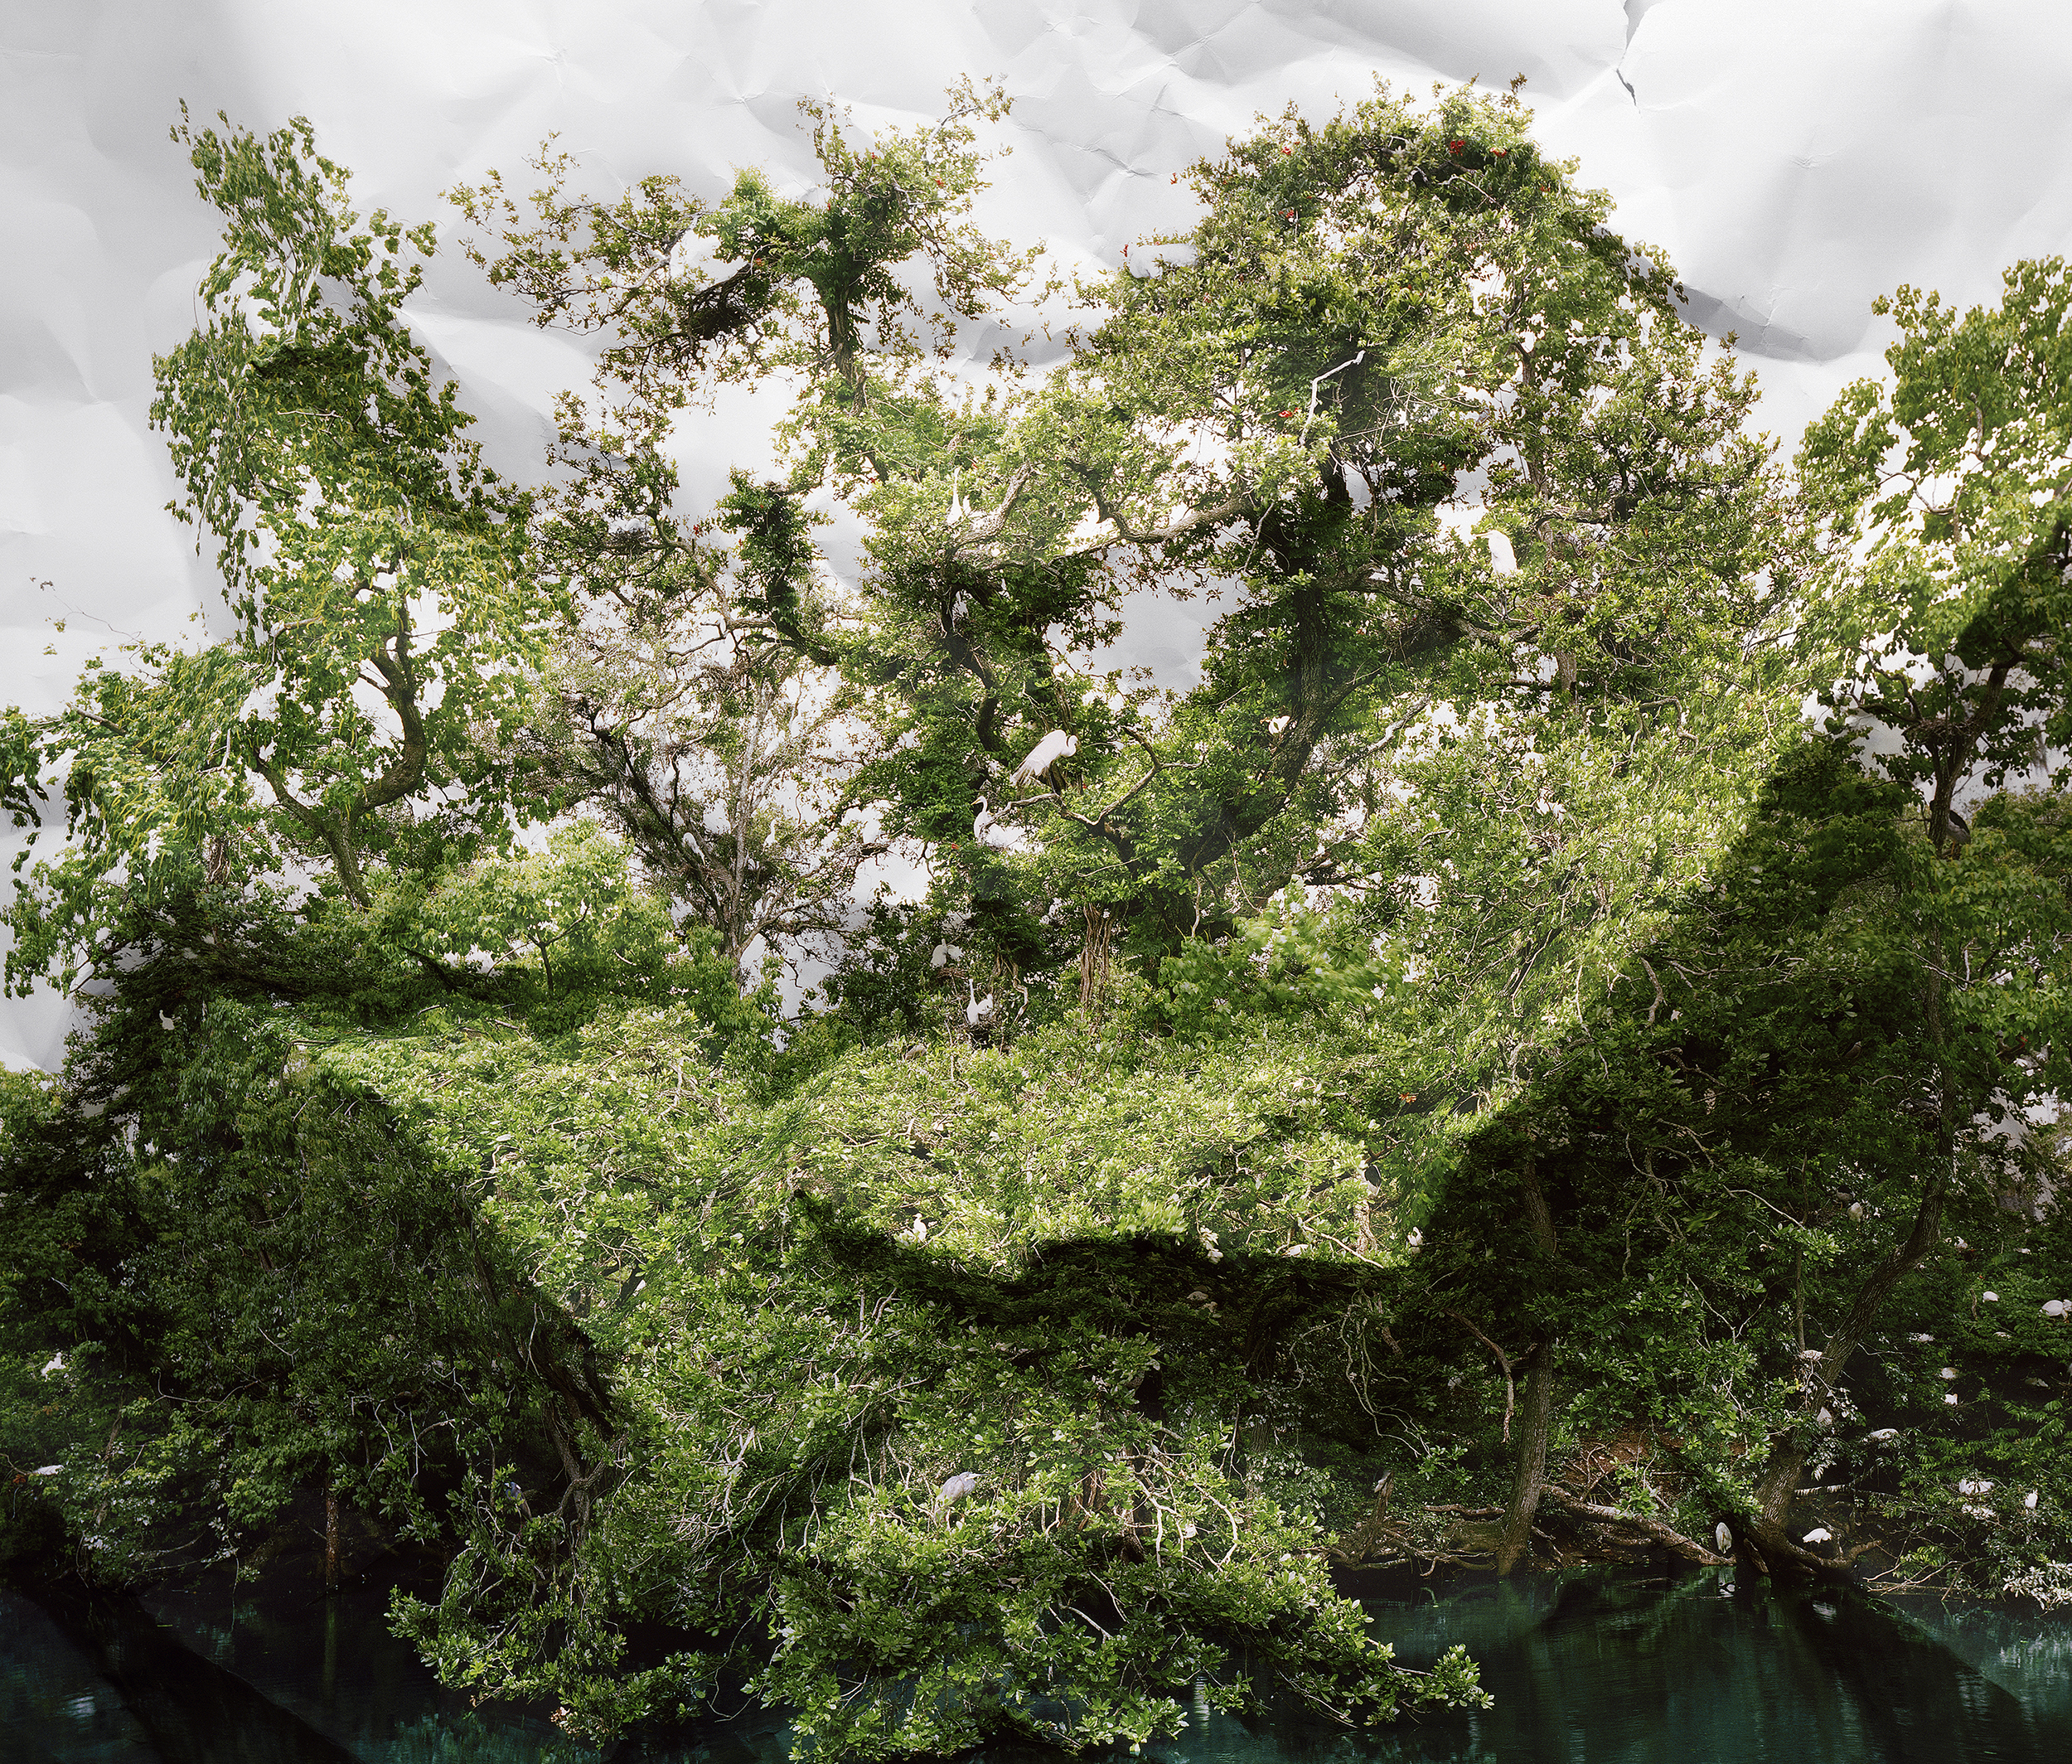 Laura Plageman,  Response to Egret Rookery, Louisiana , 2010  Digital pigment print, 30 x 35 in, edition of 10; 45 x 52.9 in, edition of 5   Inquire